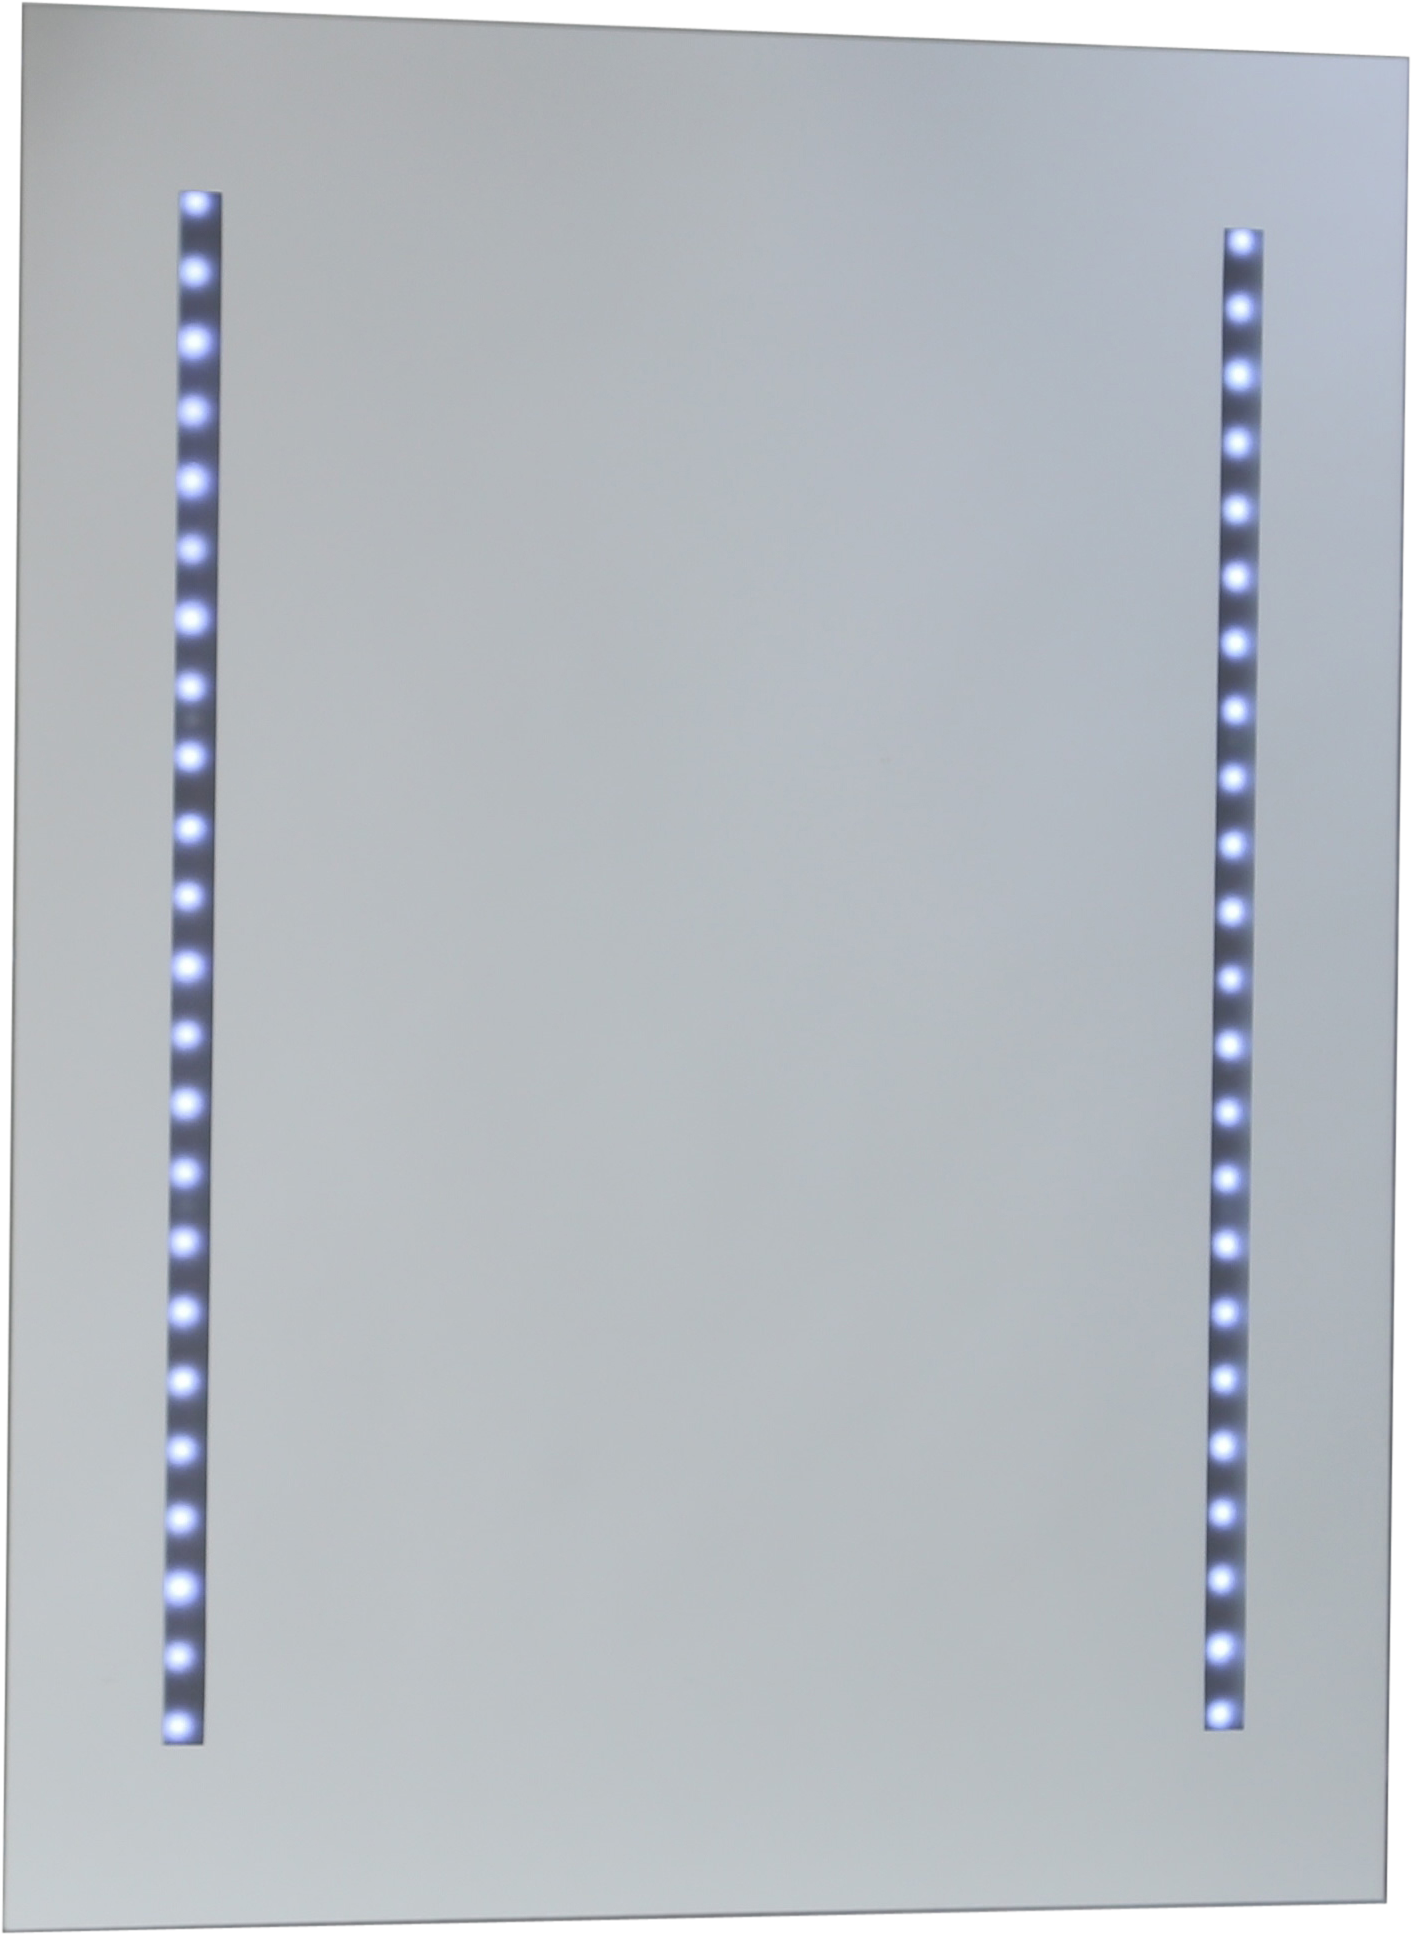 Ceramica Mirror With Battery Powered Led Lights At Best Online Prices Checked Daily Our Customers Rat Battery Powered Led Lights Mirror Led Lights